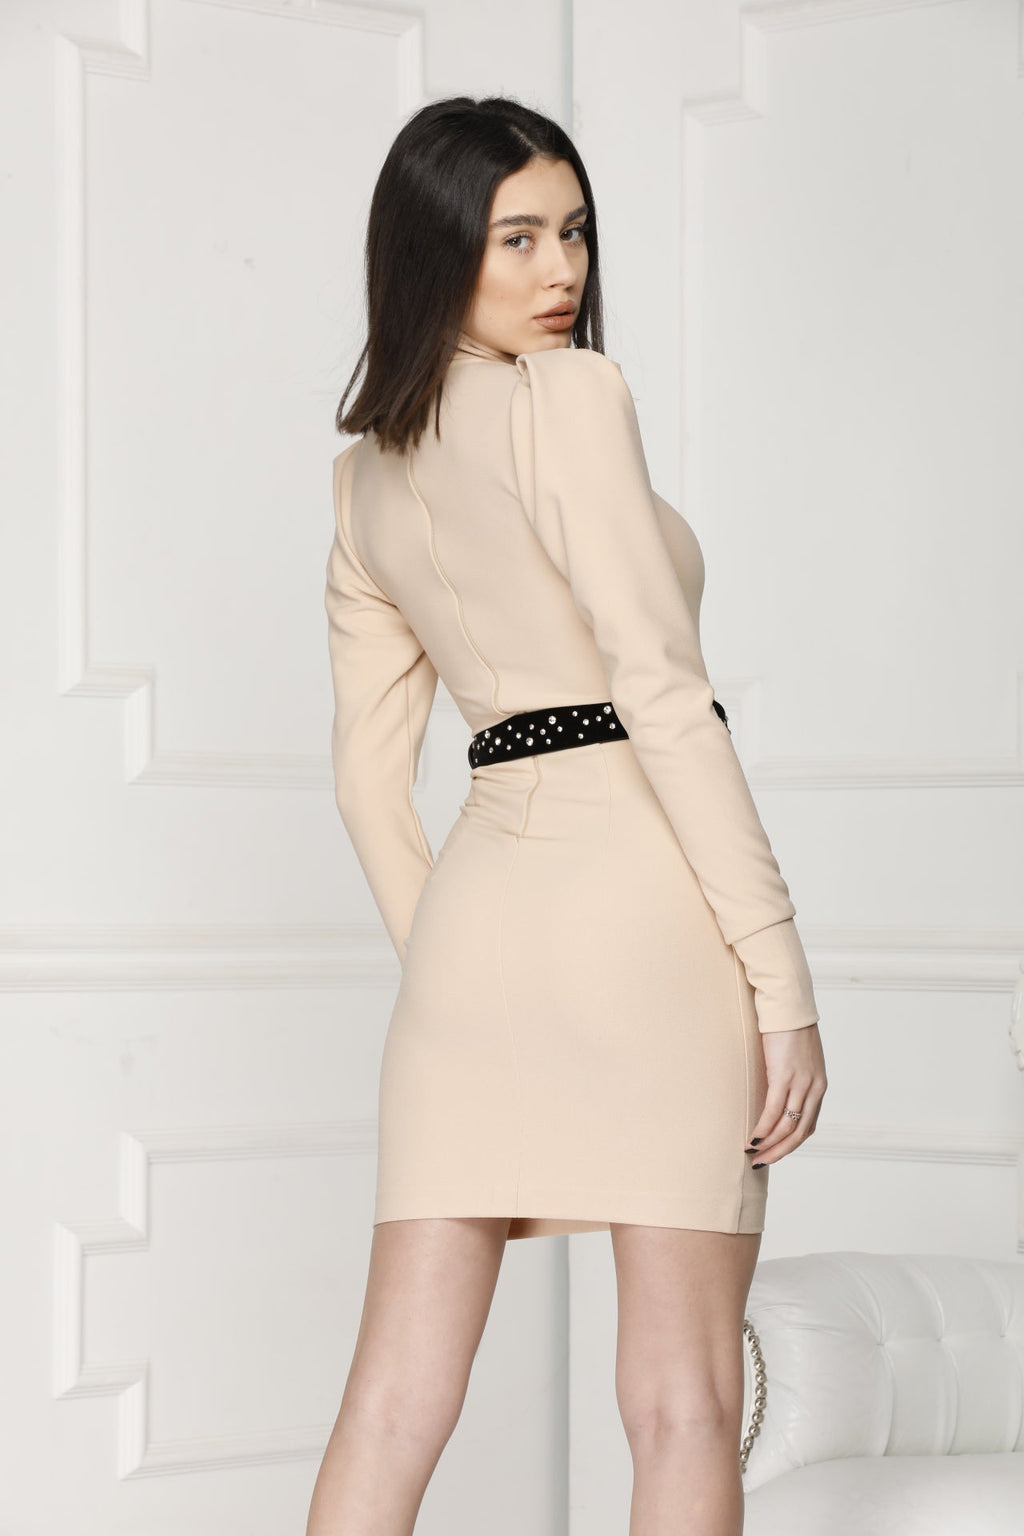 Adela Nude mini dress back details.